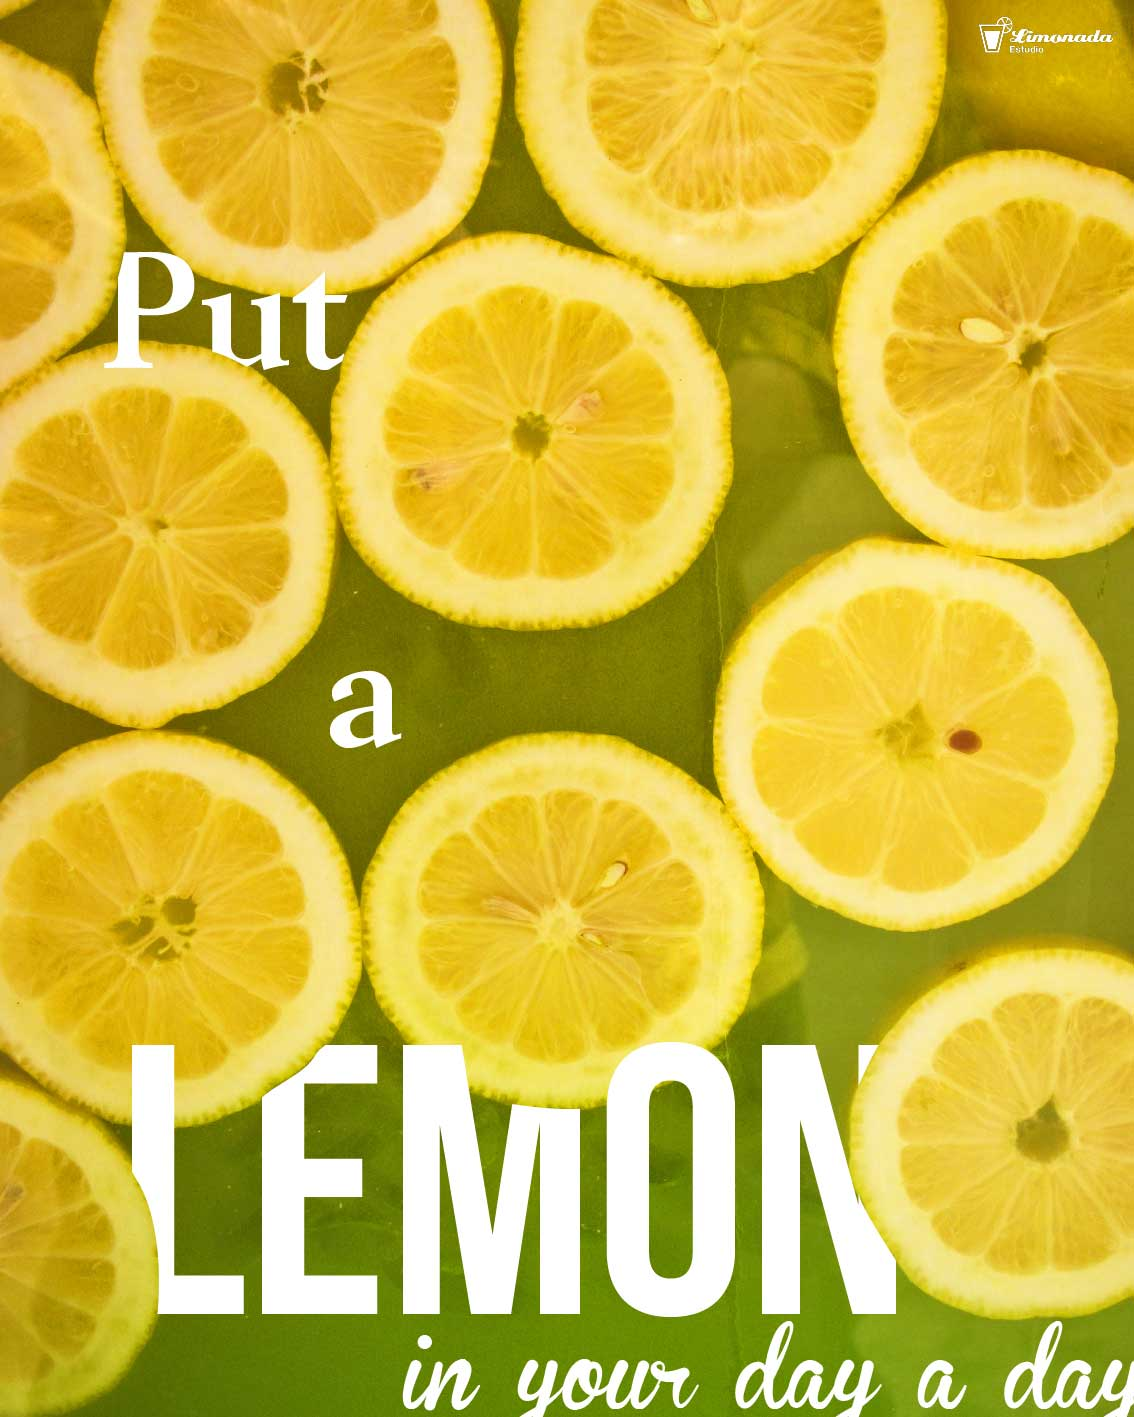 01-Put a lemon in your day a day